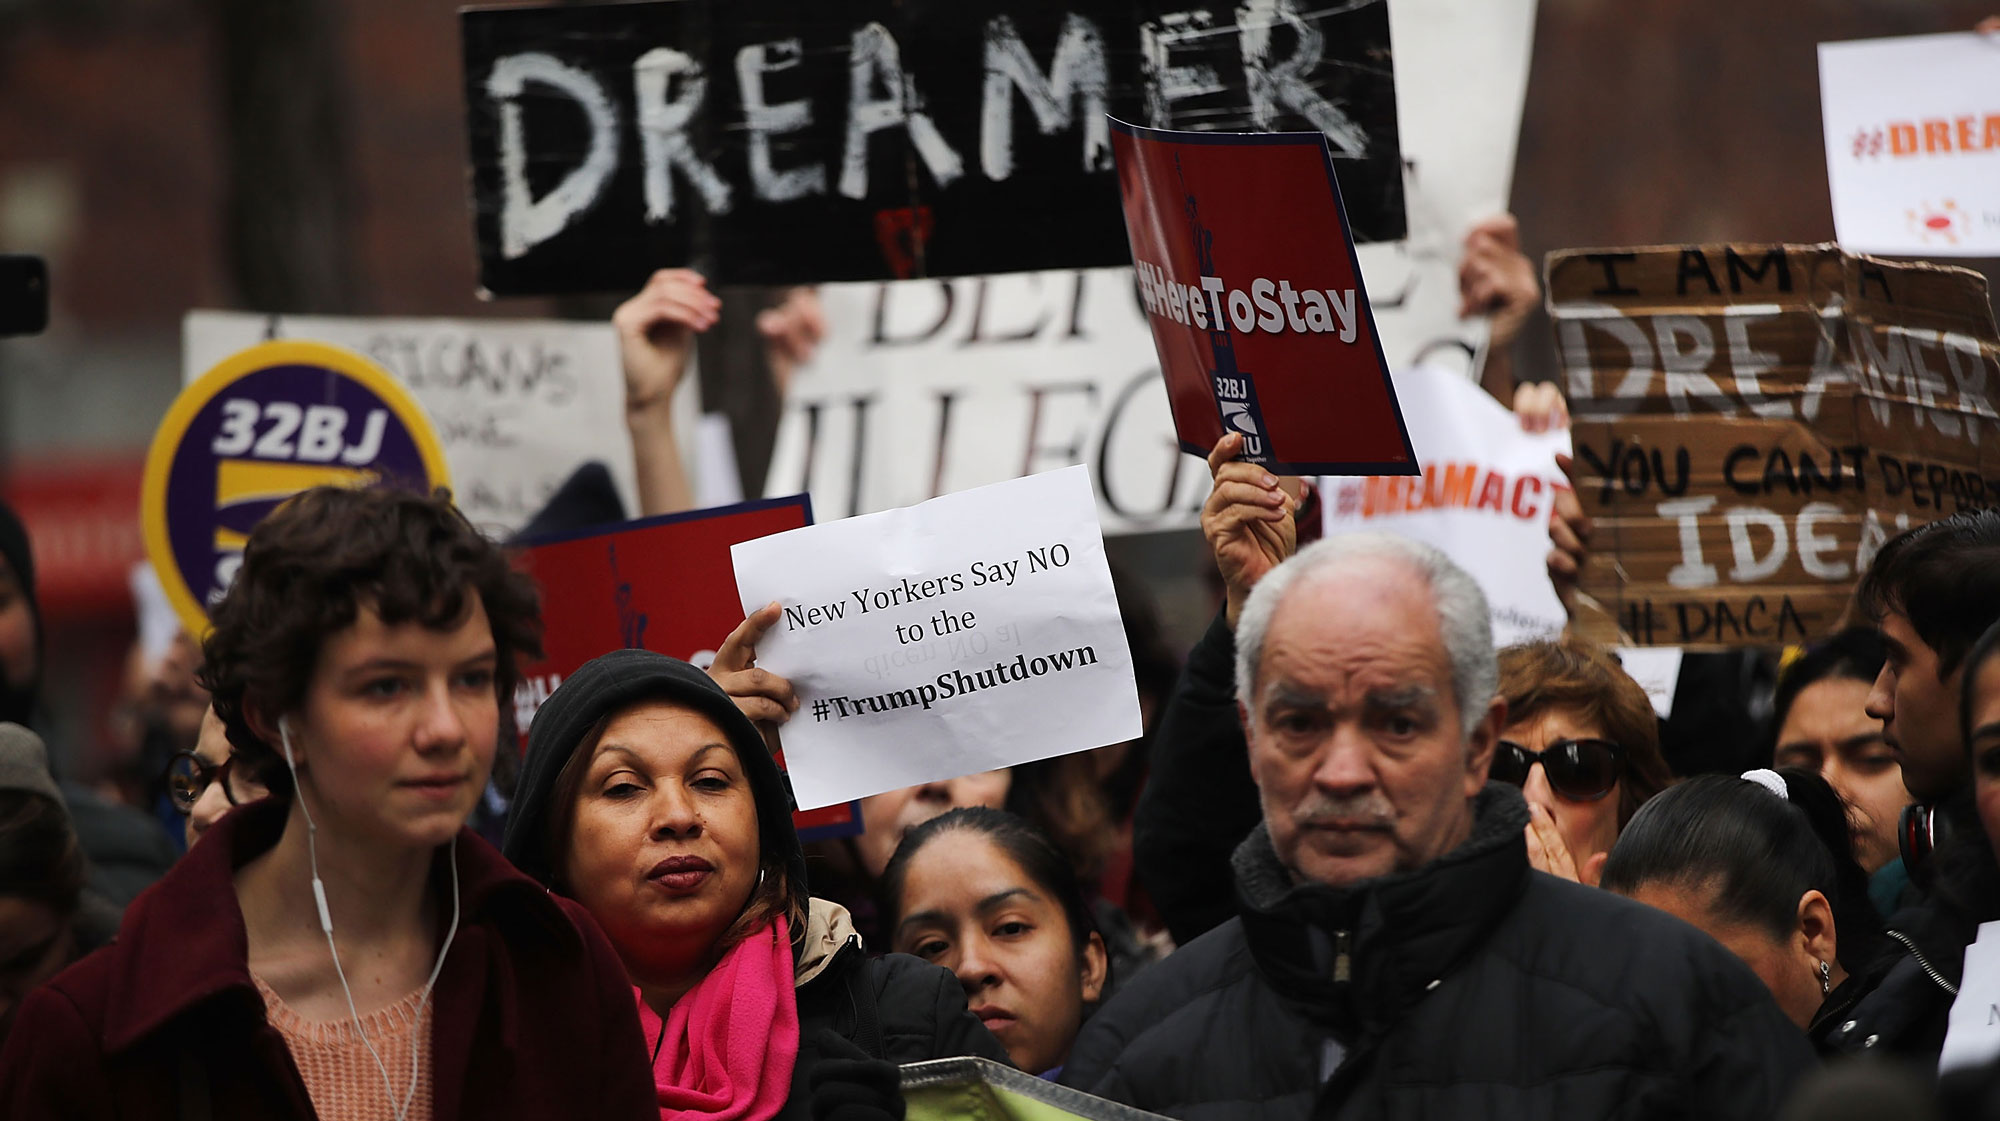 Activists In New York Protest Government Shutdown  (Photo by Spencer Platt/Getty Images)